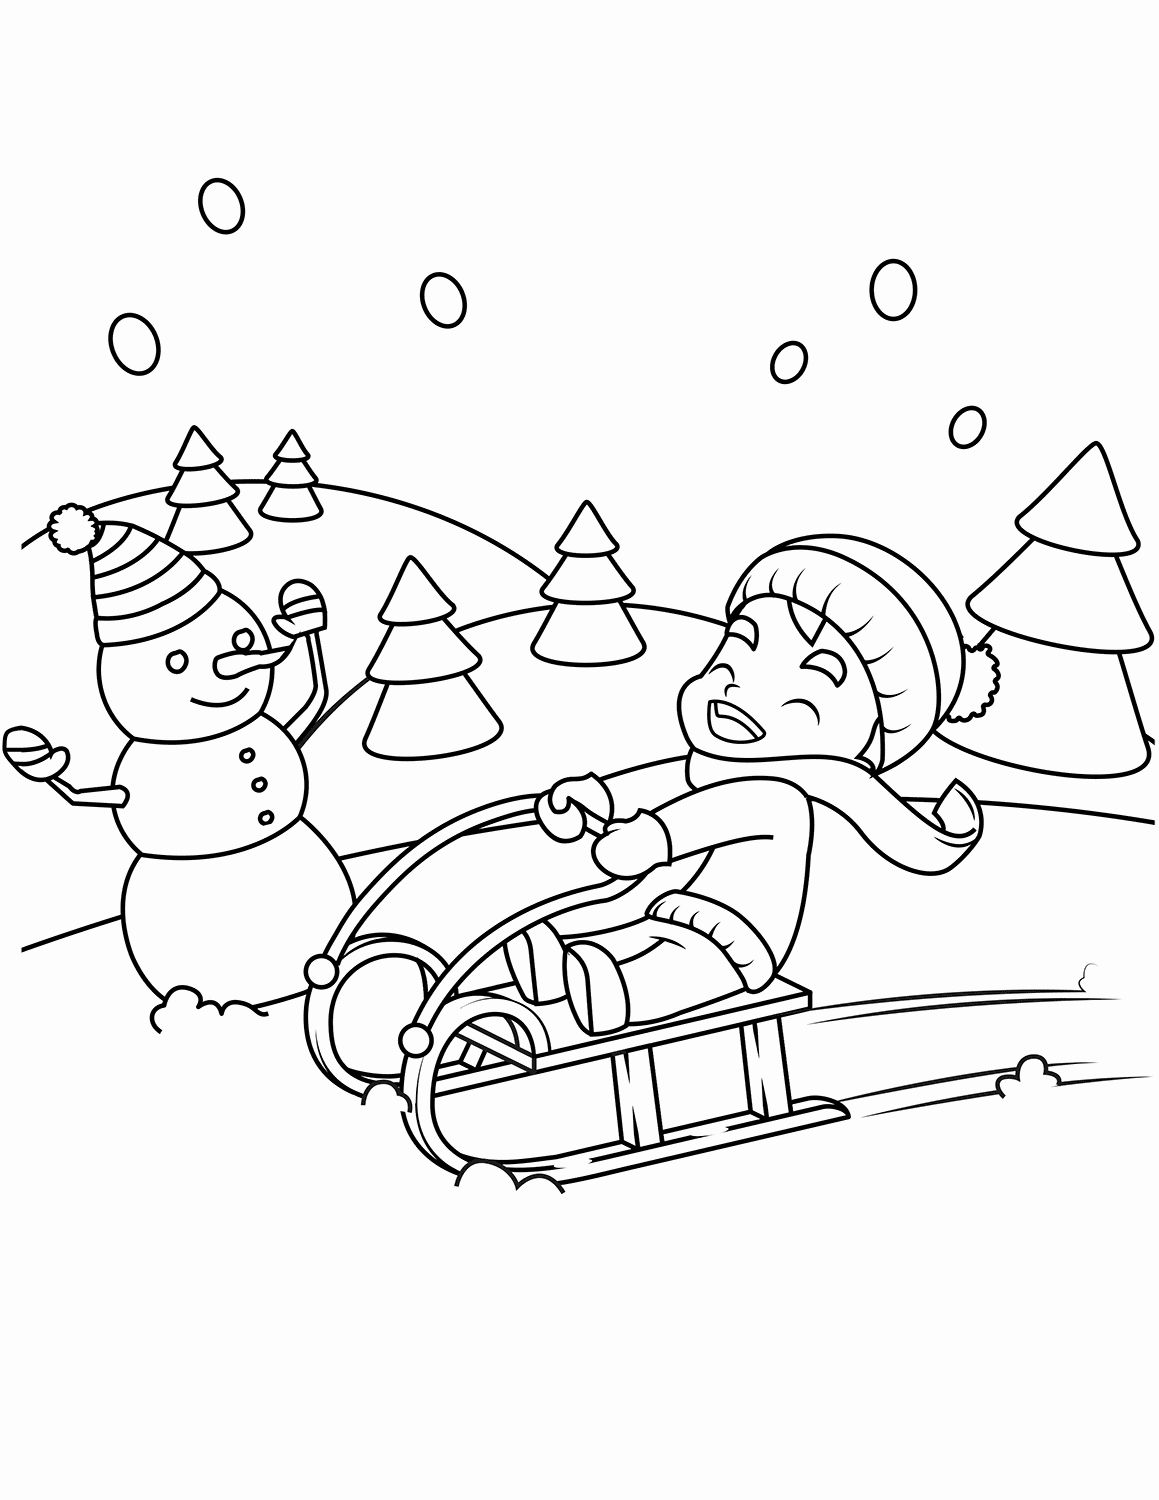 Winter Coloring Pages For Toddlers Elegant Free Printable Winter